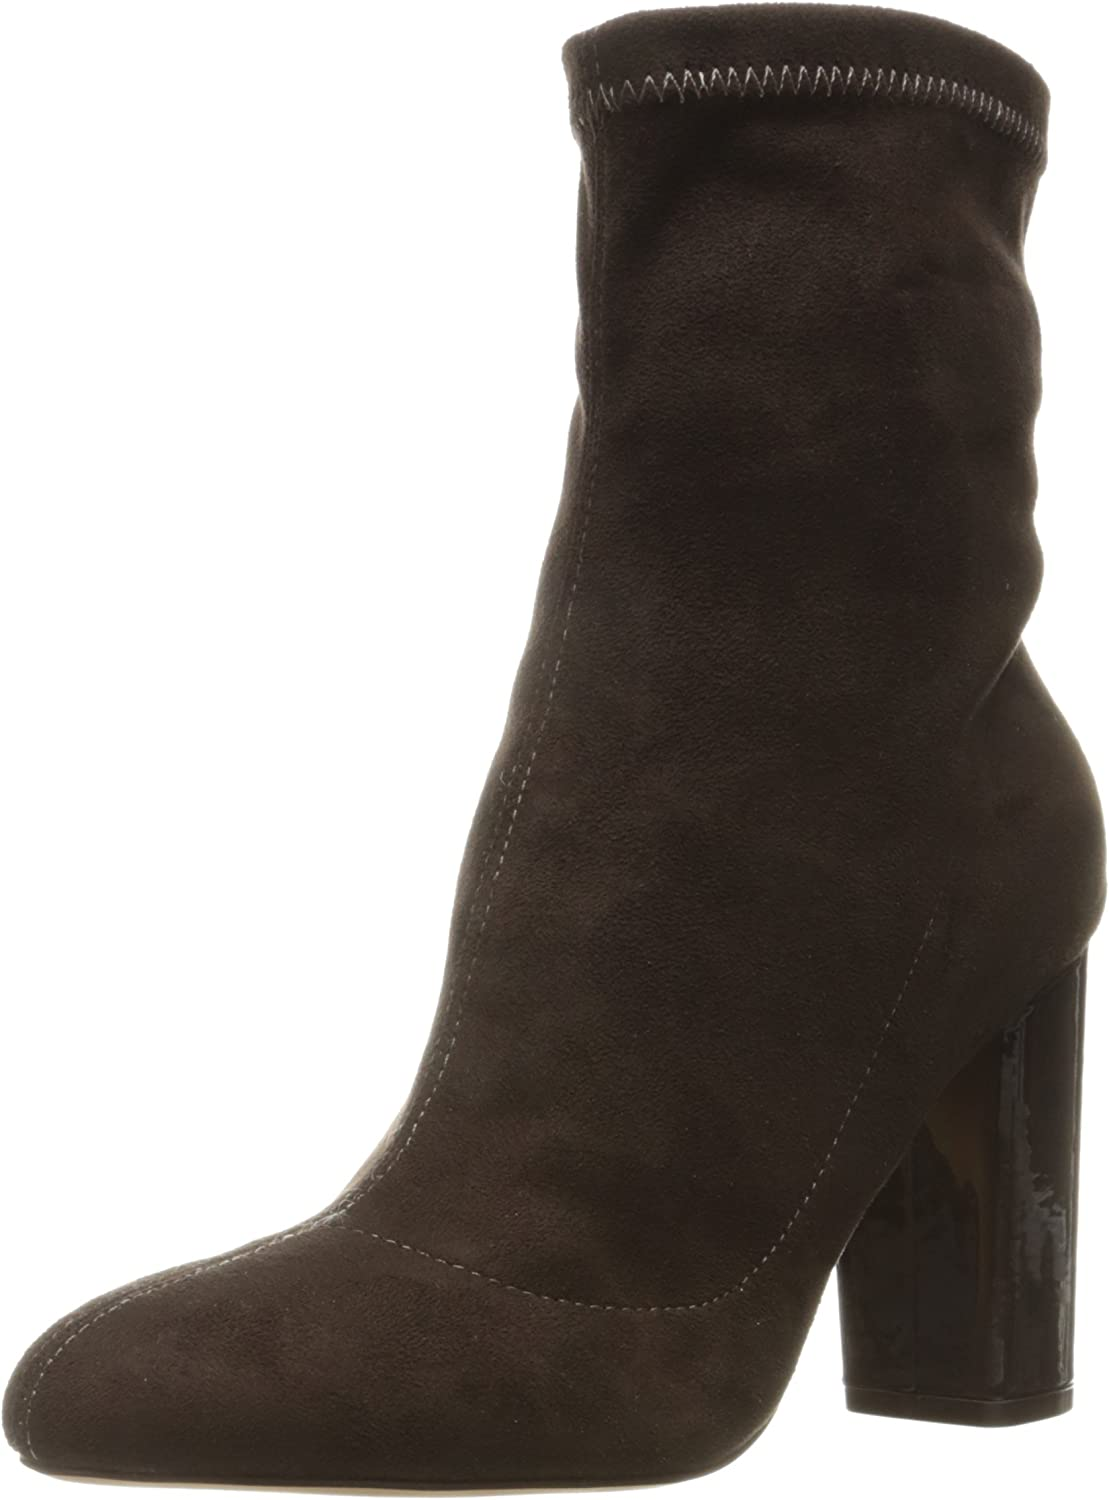 Daya by Zendaya Womens Kathryn Ankle Bootie